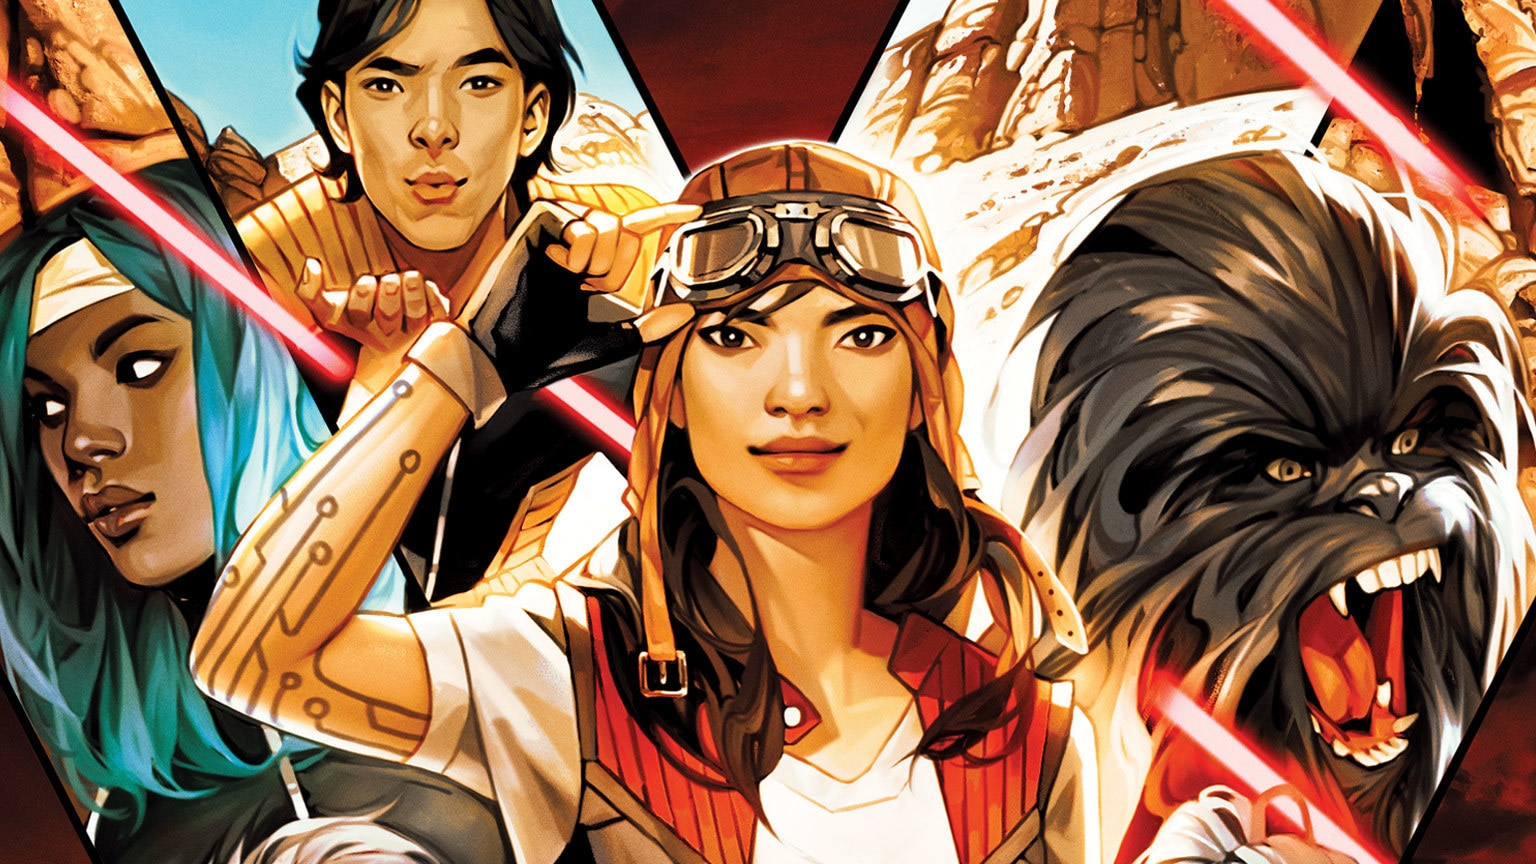 'You Never Know What's Going to Happen': Alyssa Wong on Her Upcoming Doctor Aphra Series – Exclusive